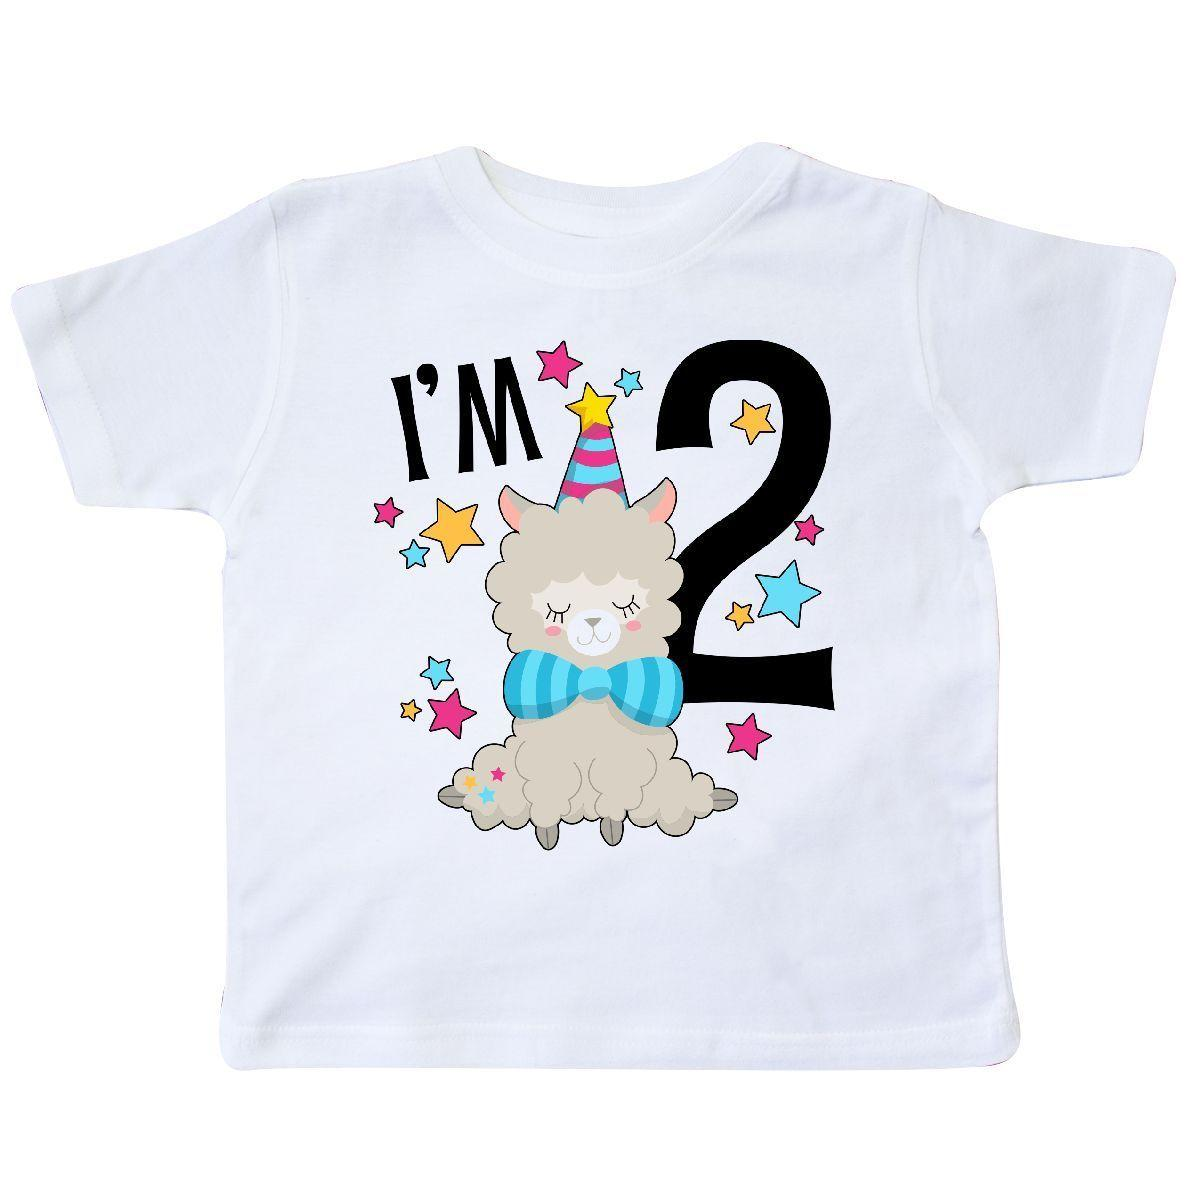 Inktastic IM Two Cute Llama Second Birthday Toddler T Shirt Birthdays 2nd 2 Funny Unisex Casual Tee Gift Cool Designs Quotes From Spirit